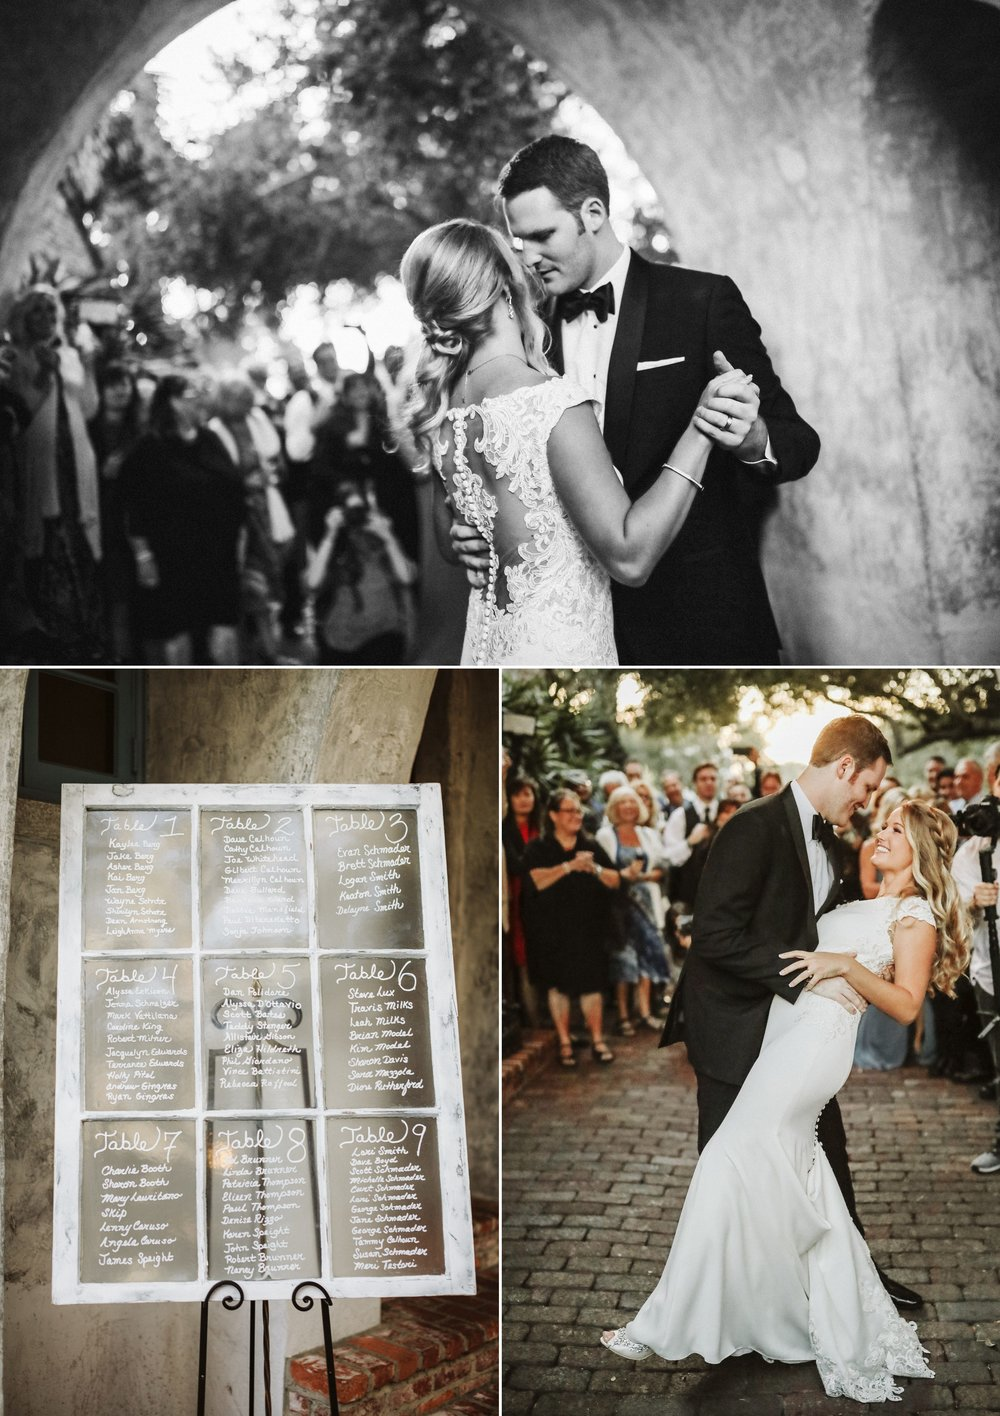 Casa Feliz Romantic Black Tie Wedding- Nick + Marissa- by Shaina DeCiryan Photography8.jpg